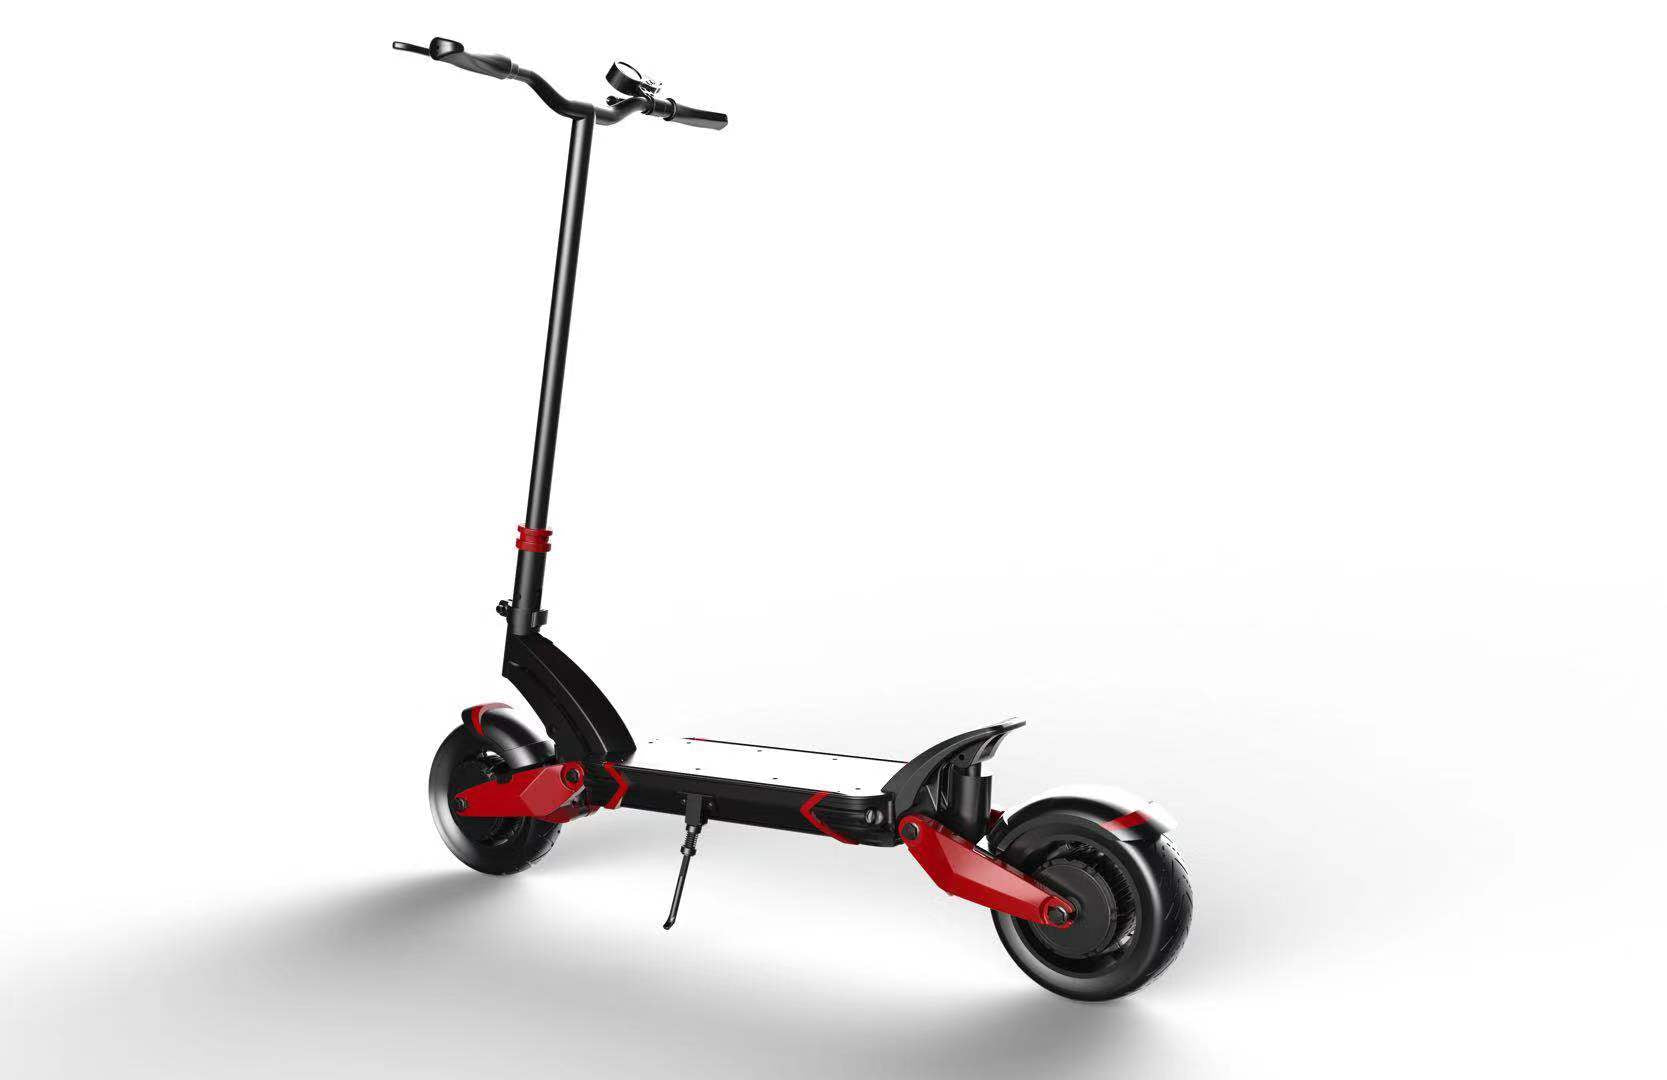 T10-Dual Motor Scooter - Electric Kick Scooter | IPG